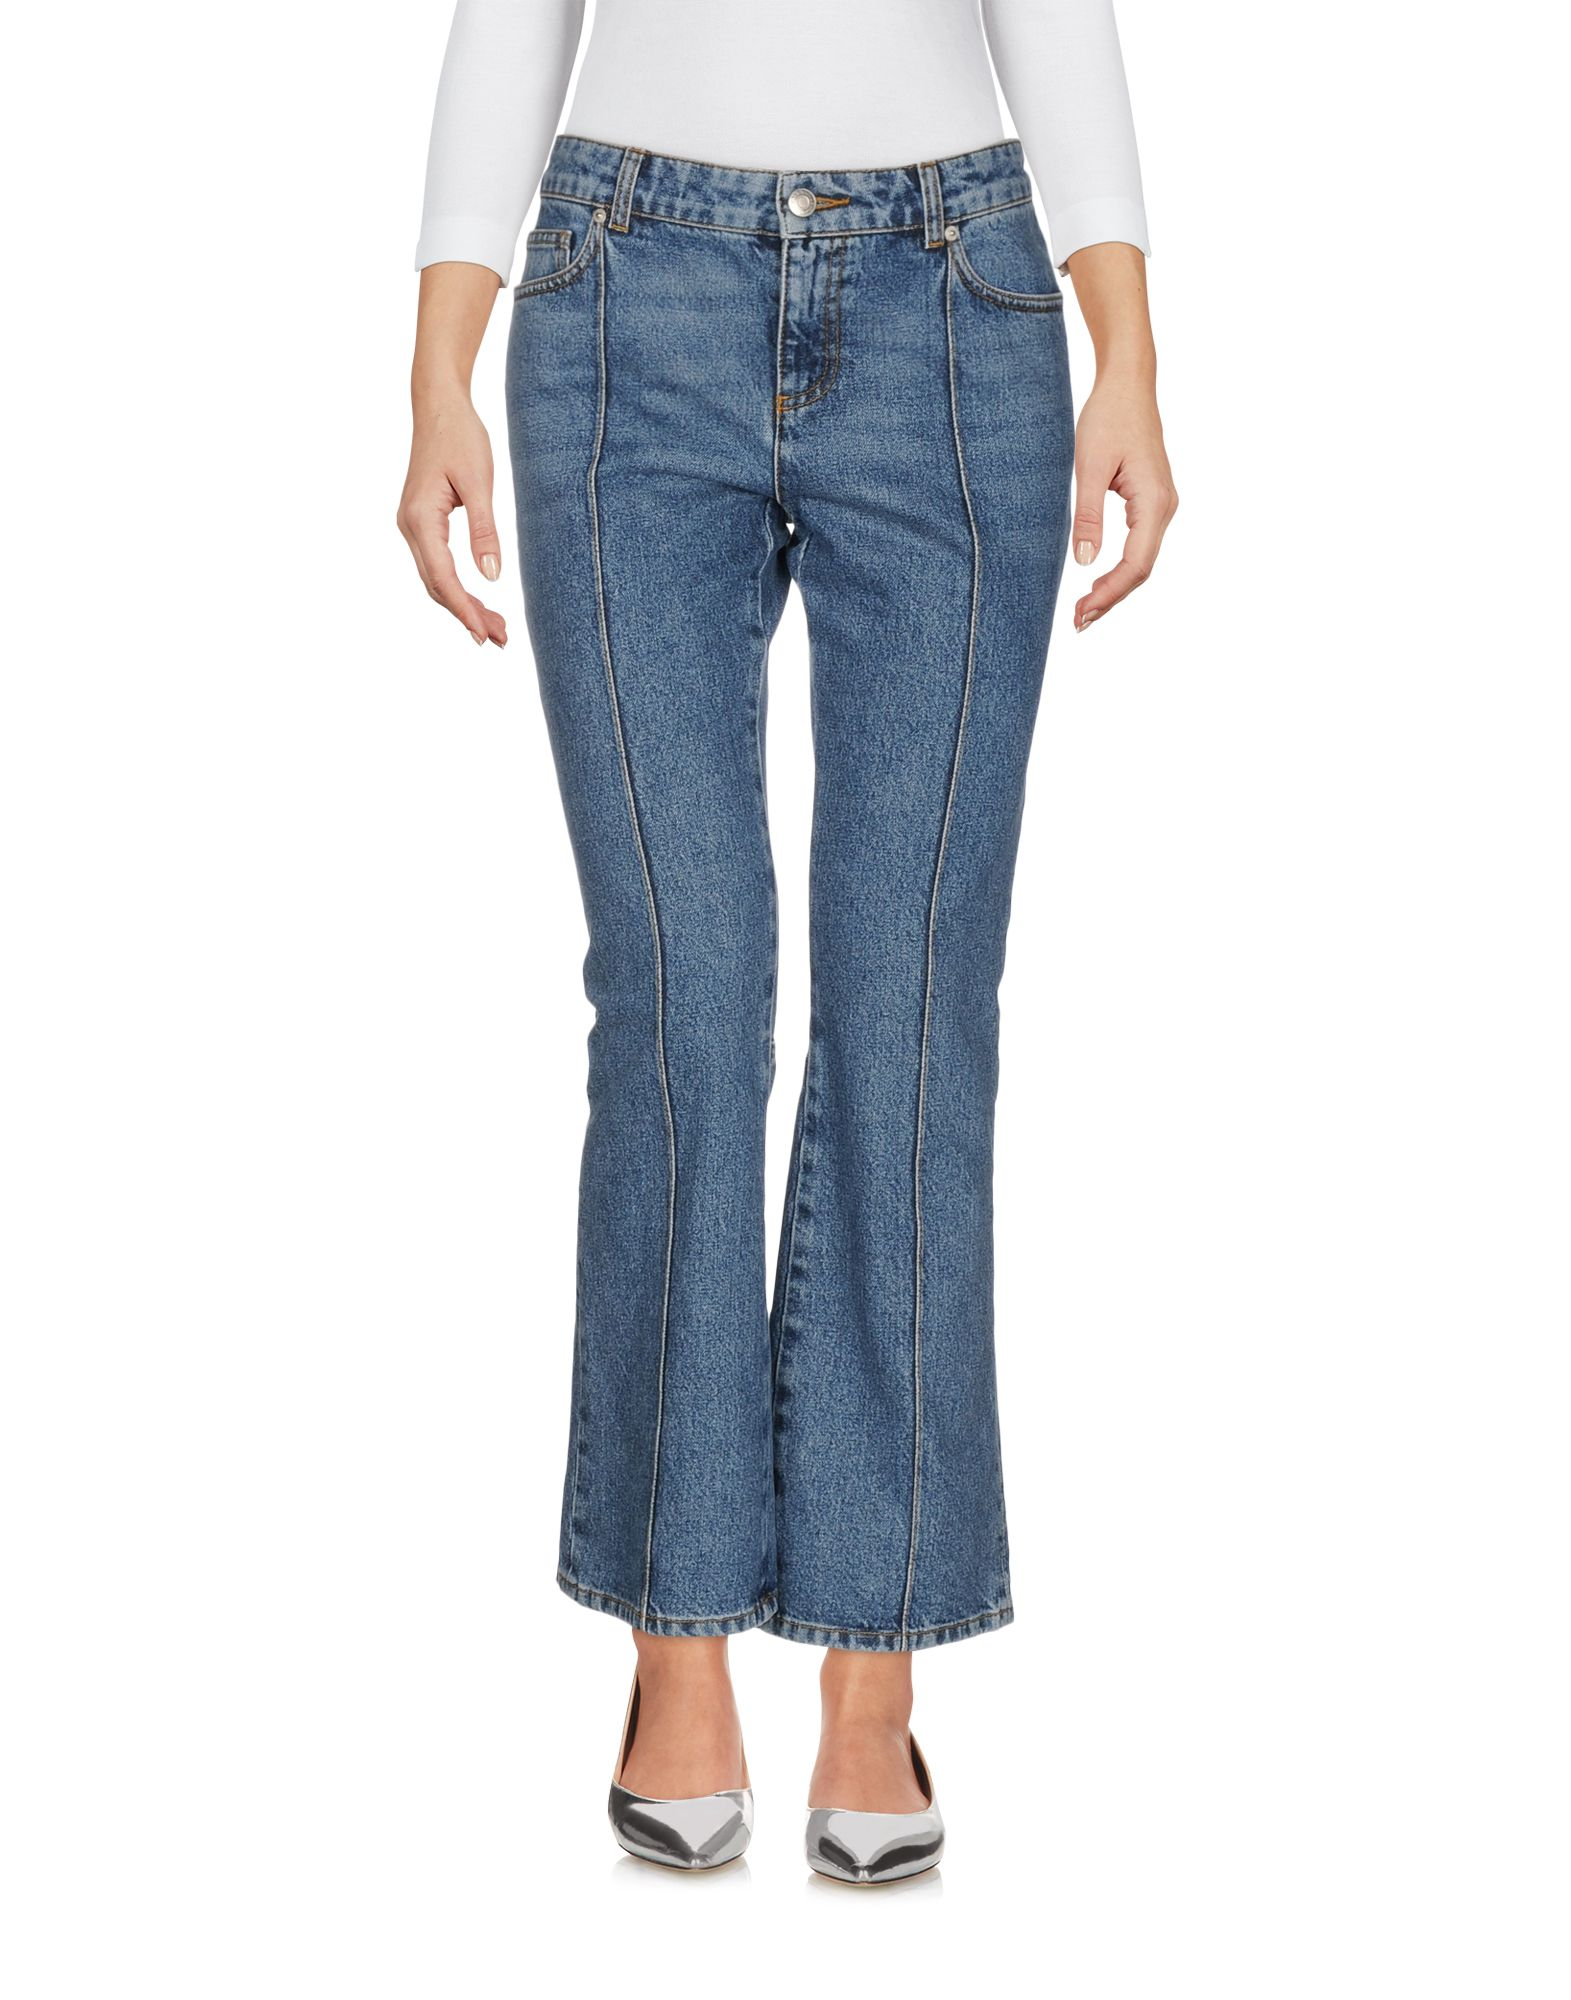 Pantaloni Jeans Alexander Mcqueen donna - 42643898IF 42643898IF